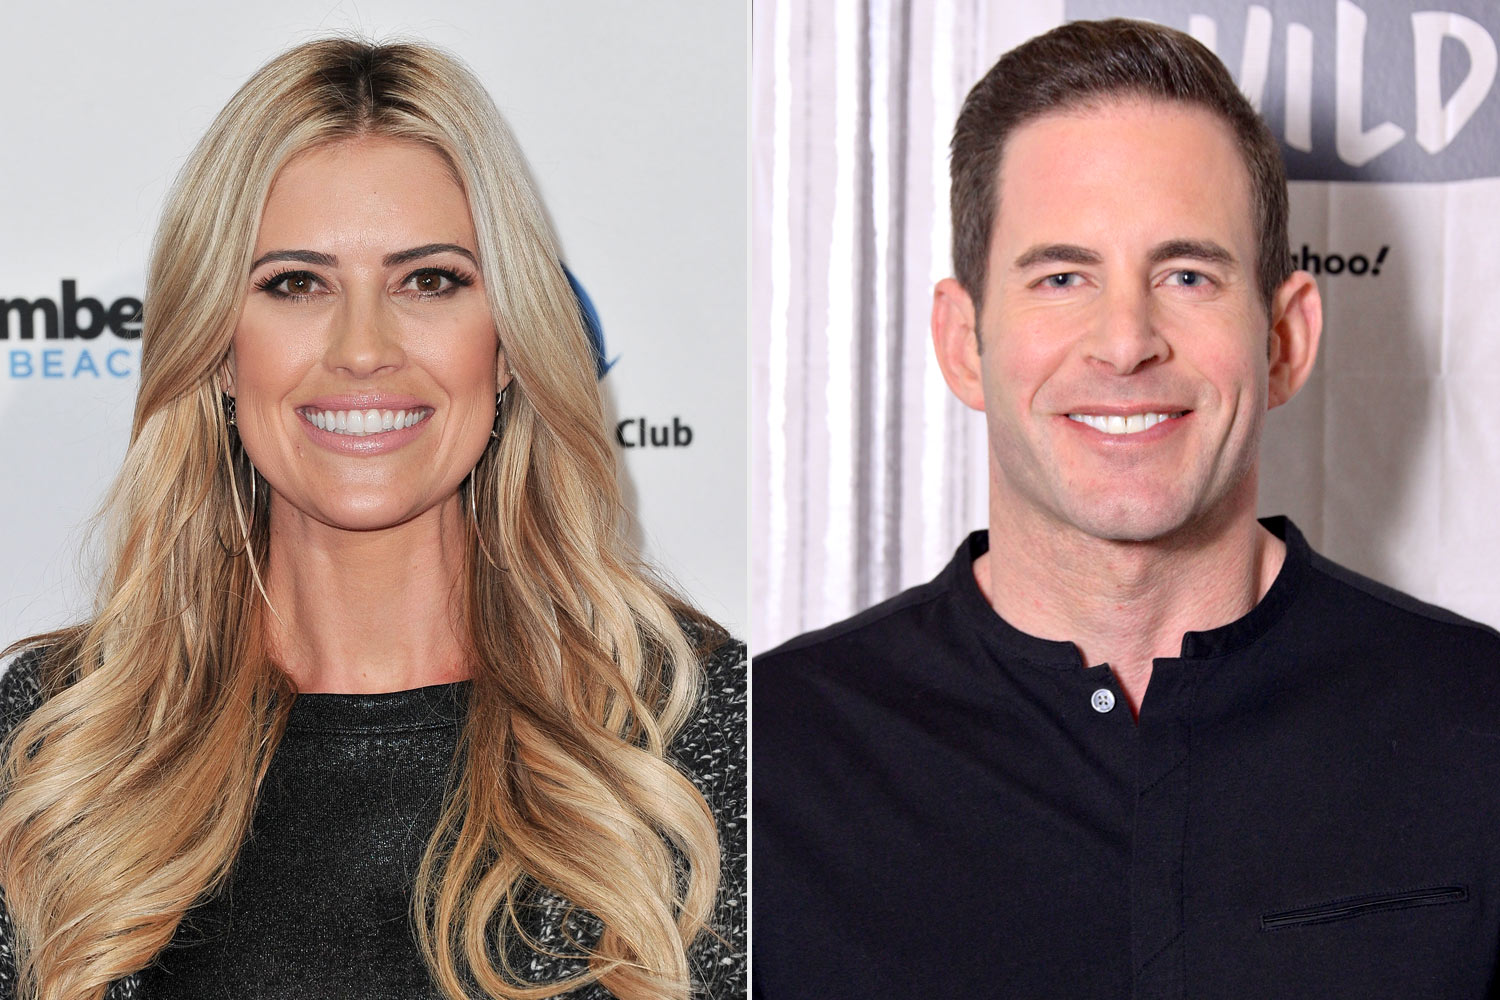 Christina Anstead and Tarek El Moussa